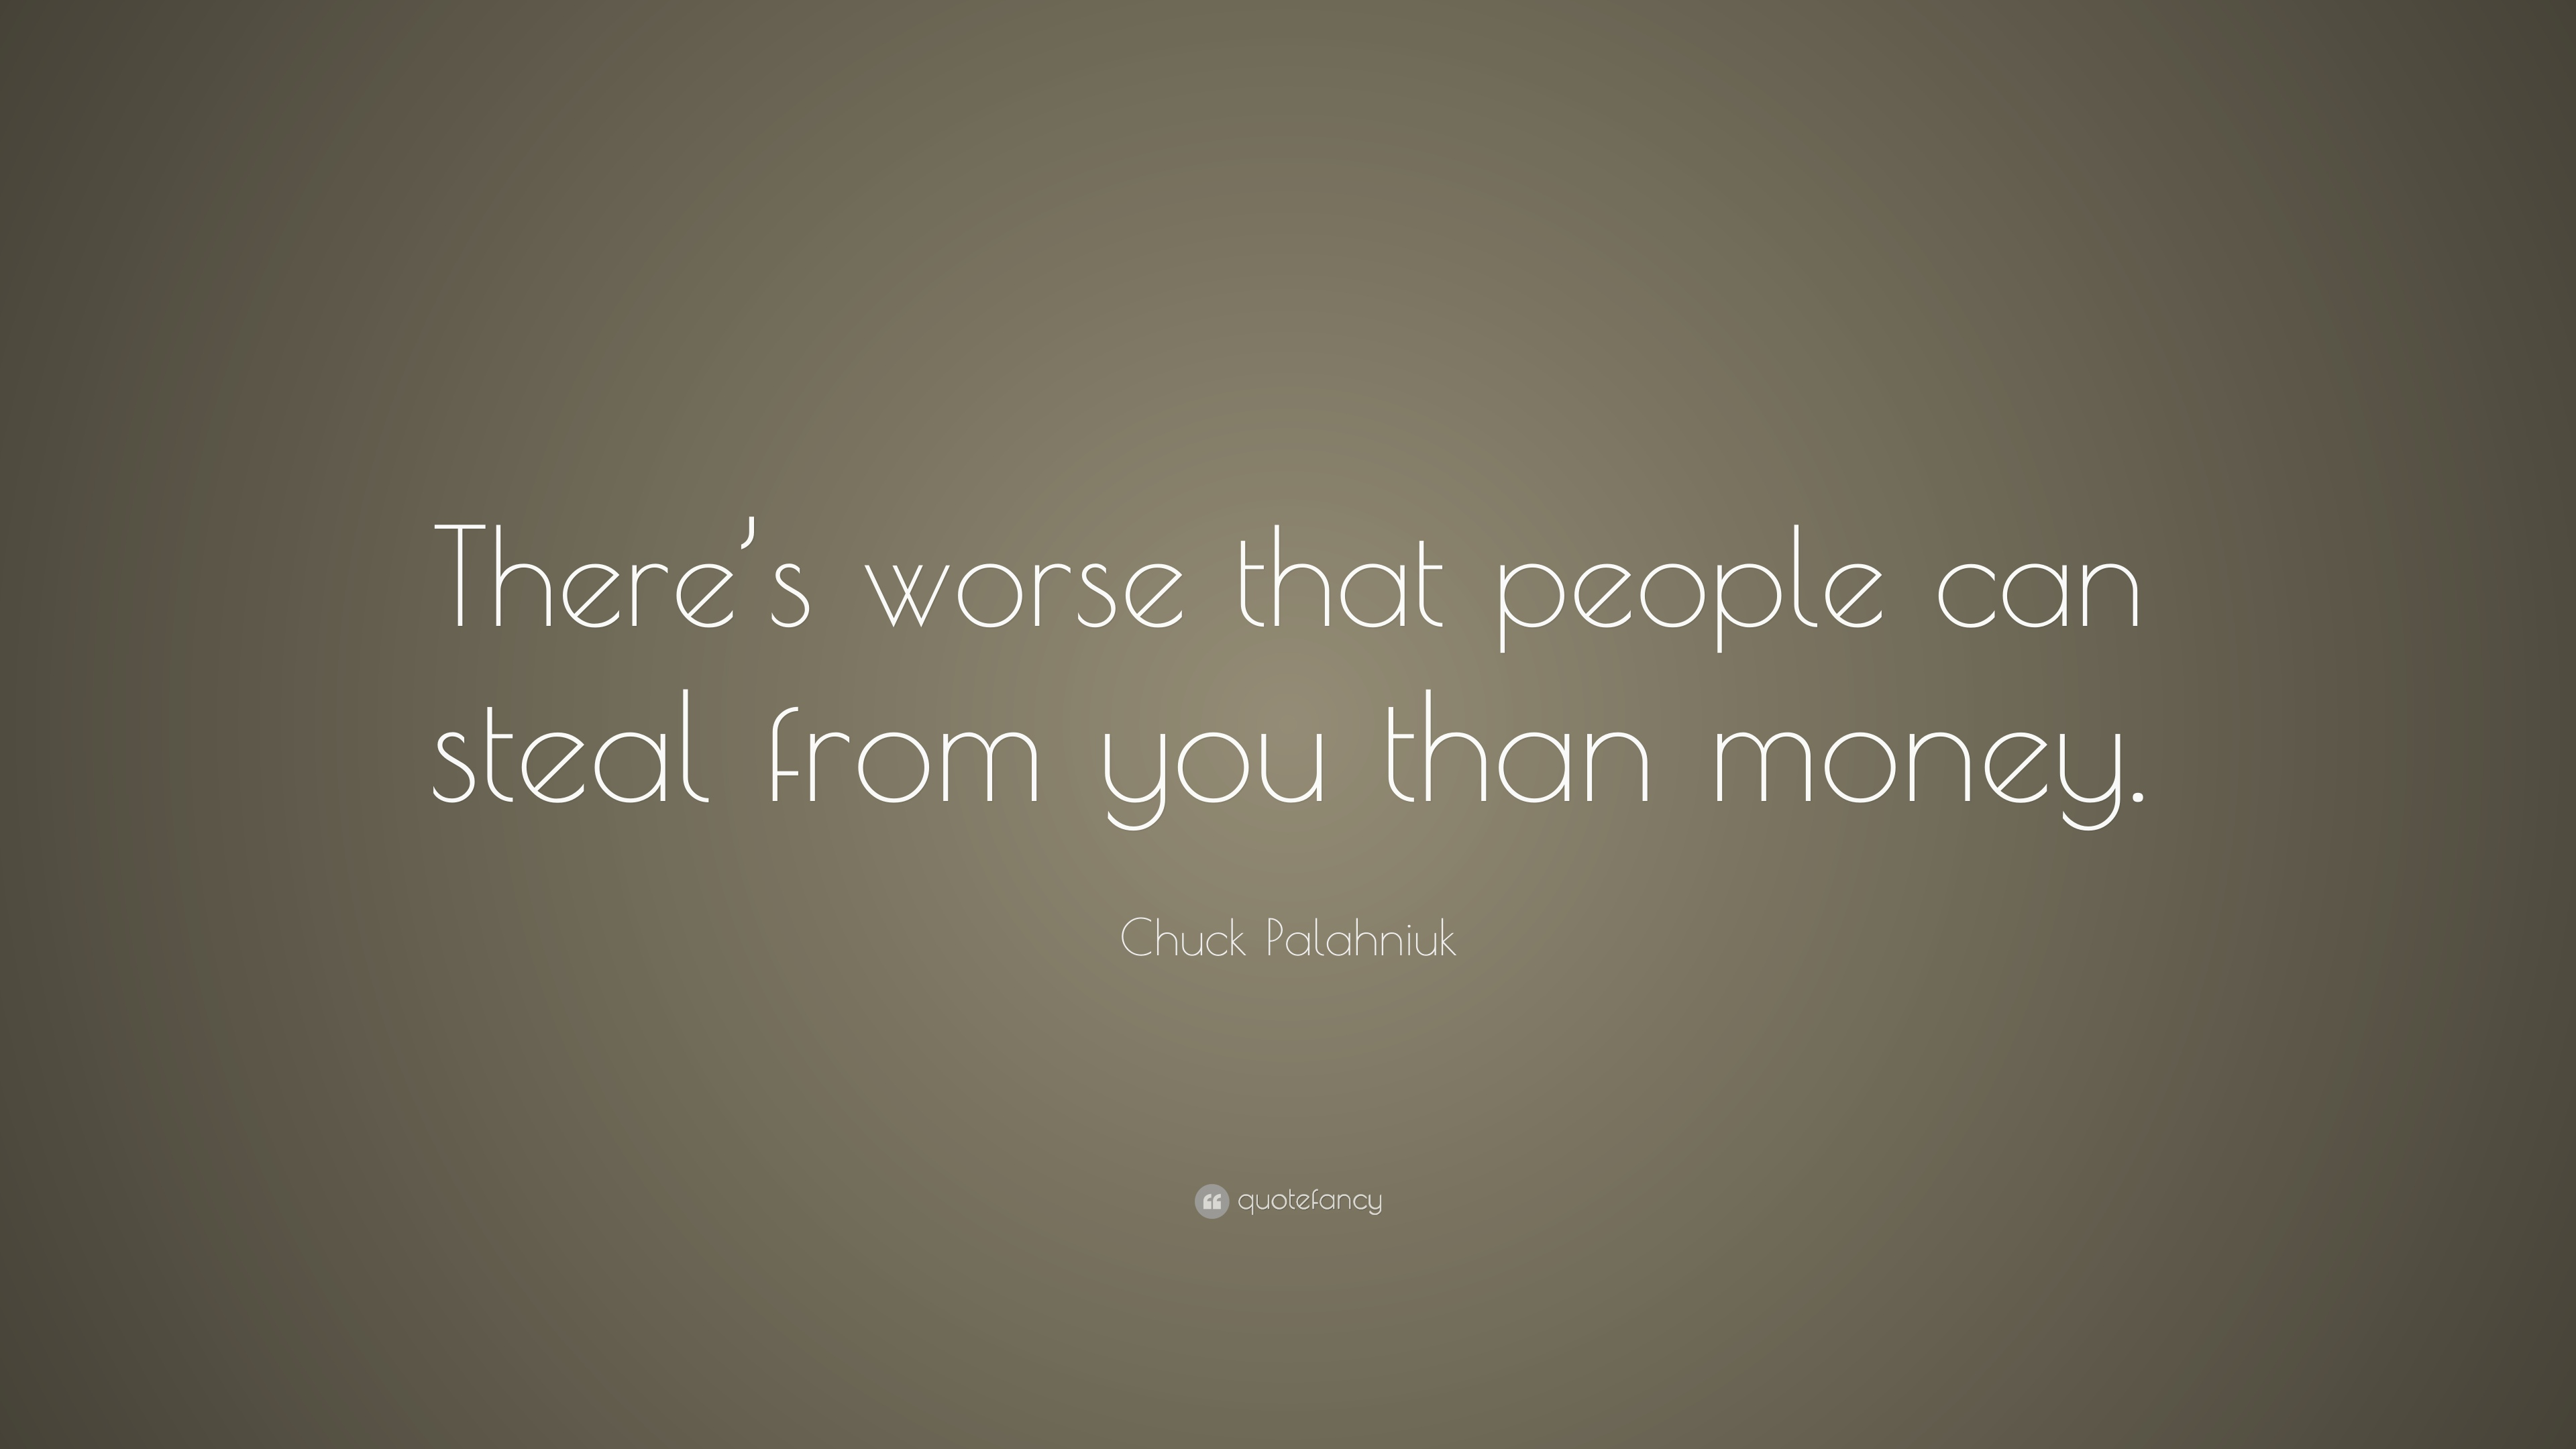 Chuck Palahniuk Quote Theres Worse That People Can Steal From You